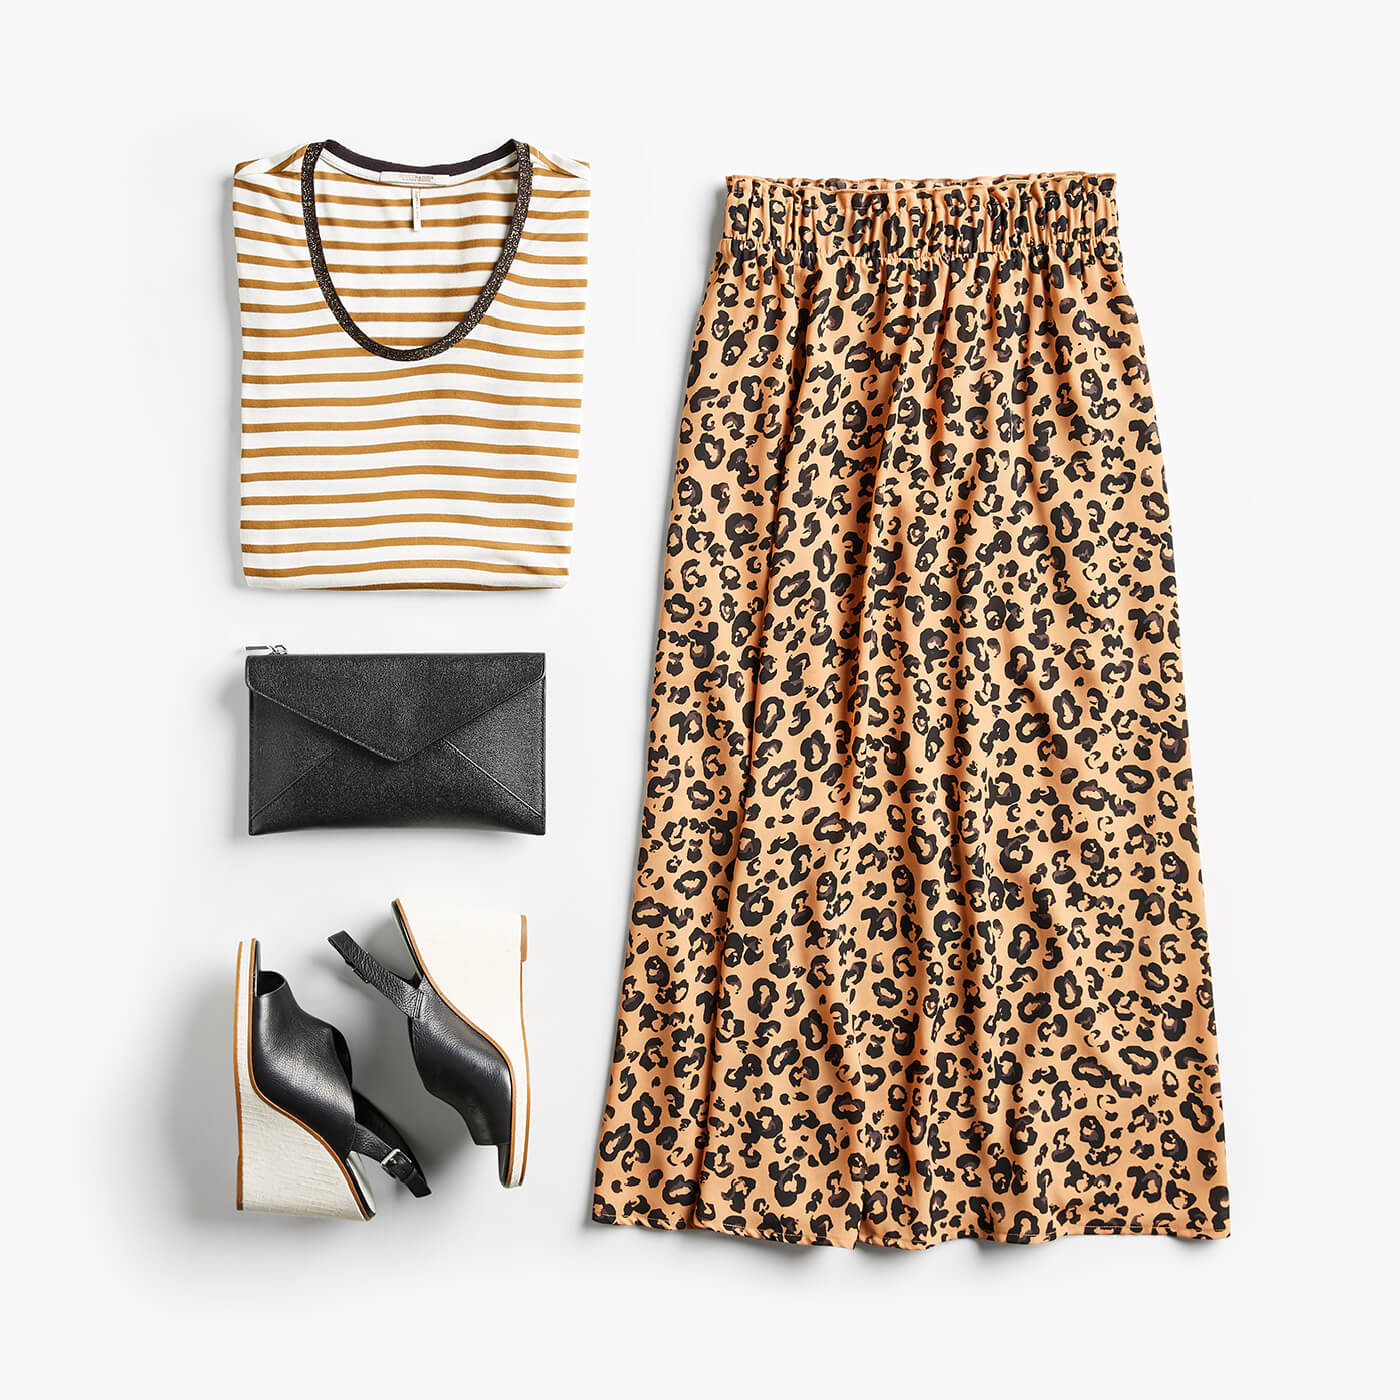 T3_W20_BLG_AAS_Trending Animal Prints_382559339_1